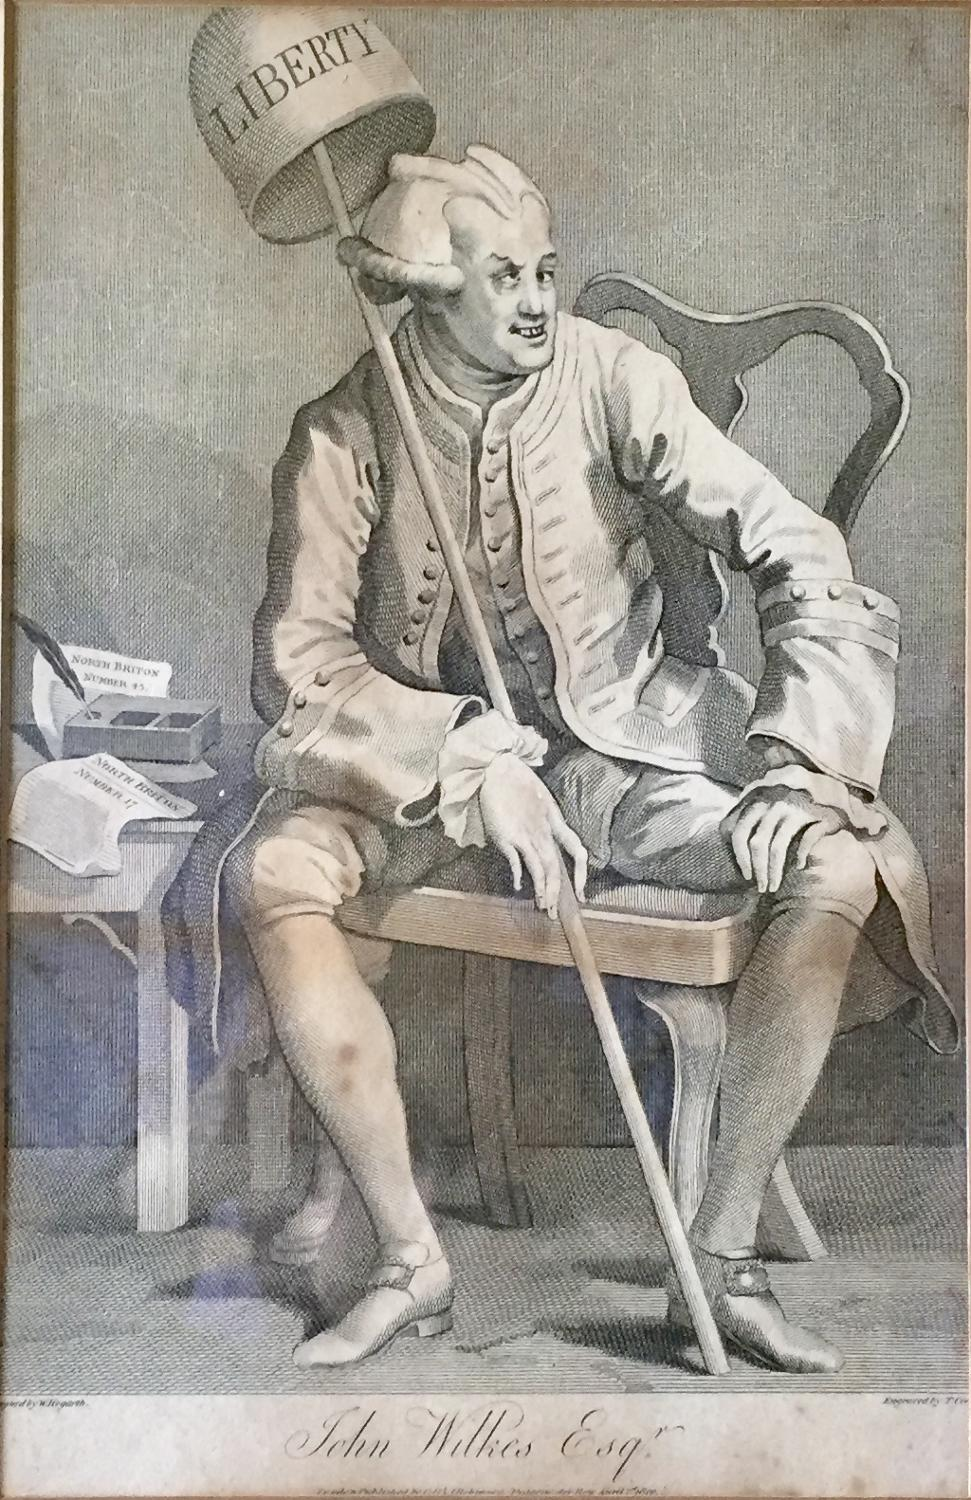 After William Hogarth, John Wilkes, Engraving